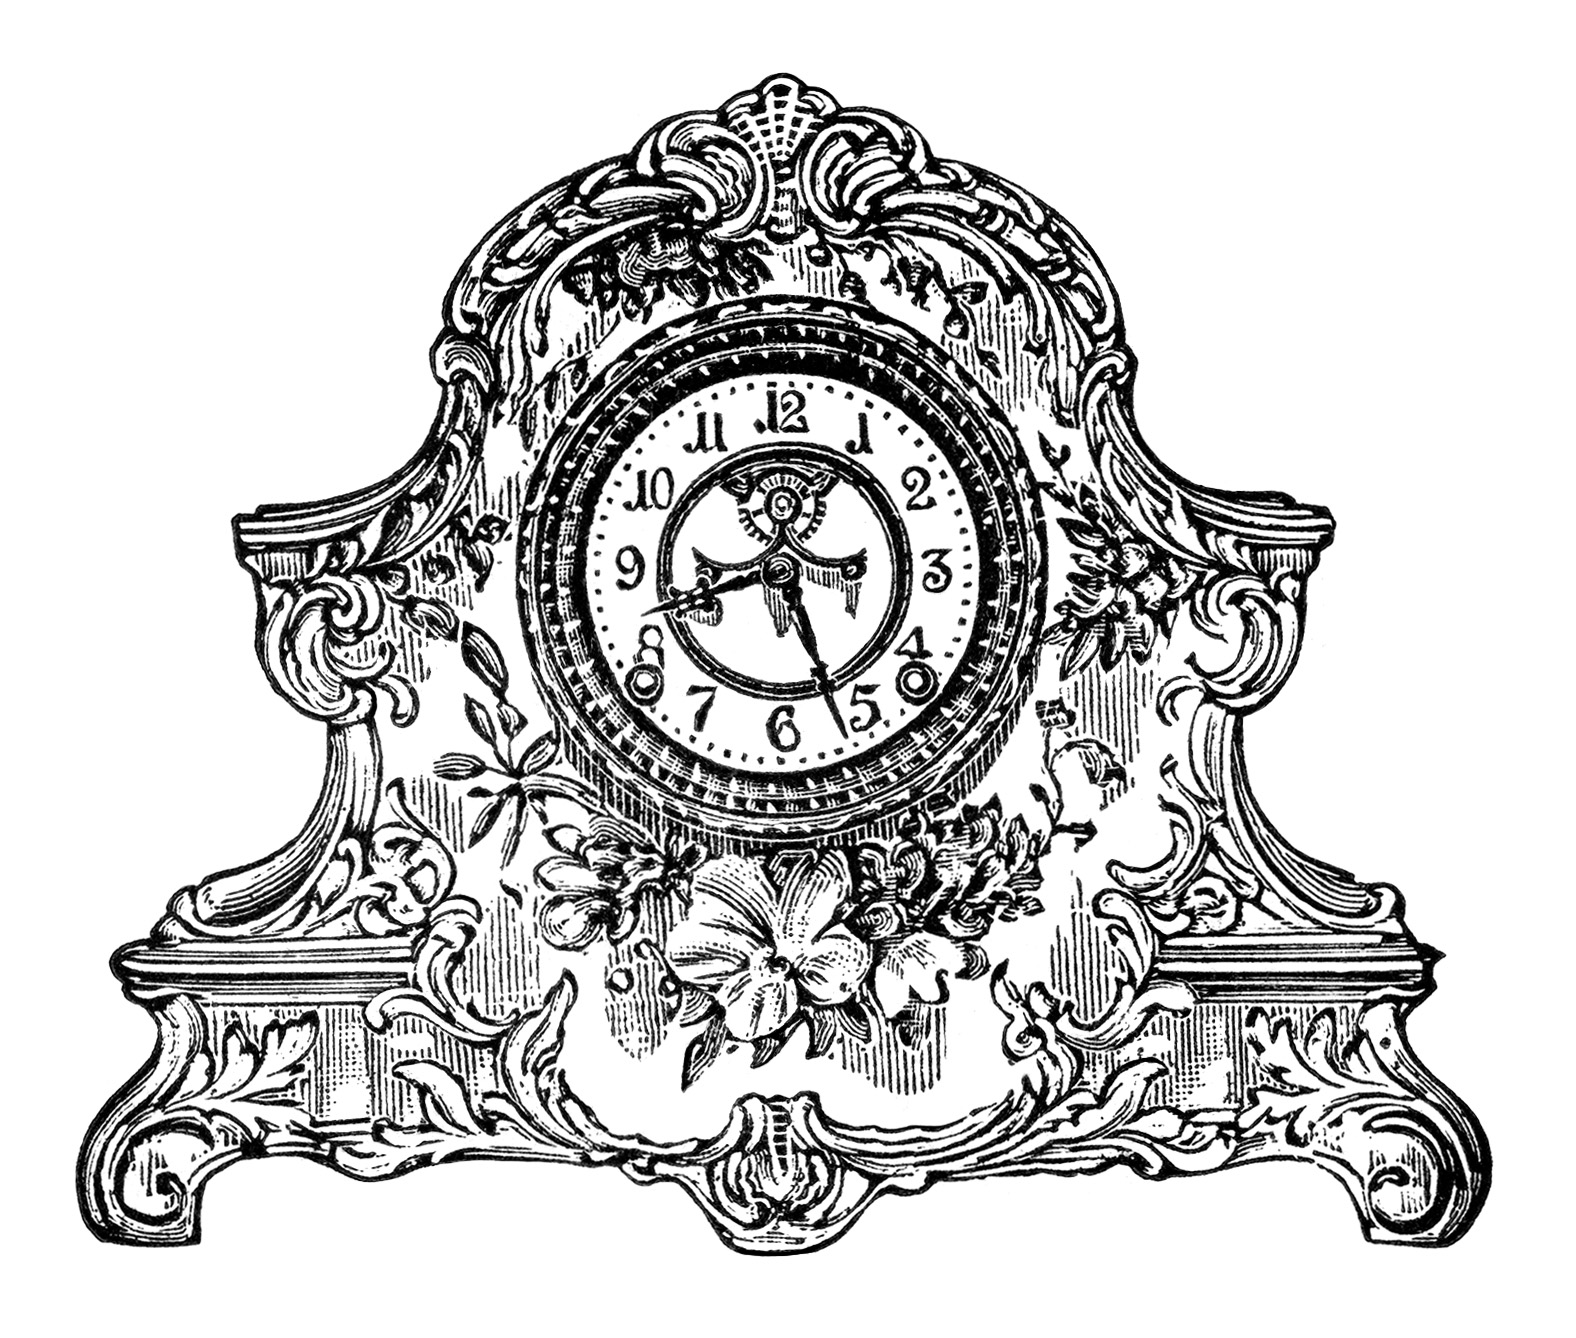 hight resolution of  vintage clock clip art black and white clipart porcelain clock image antique mantle